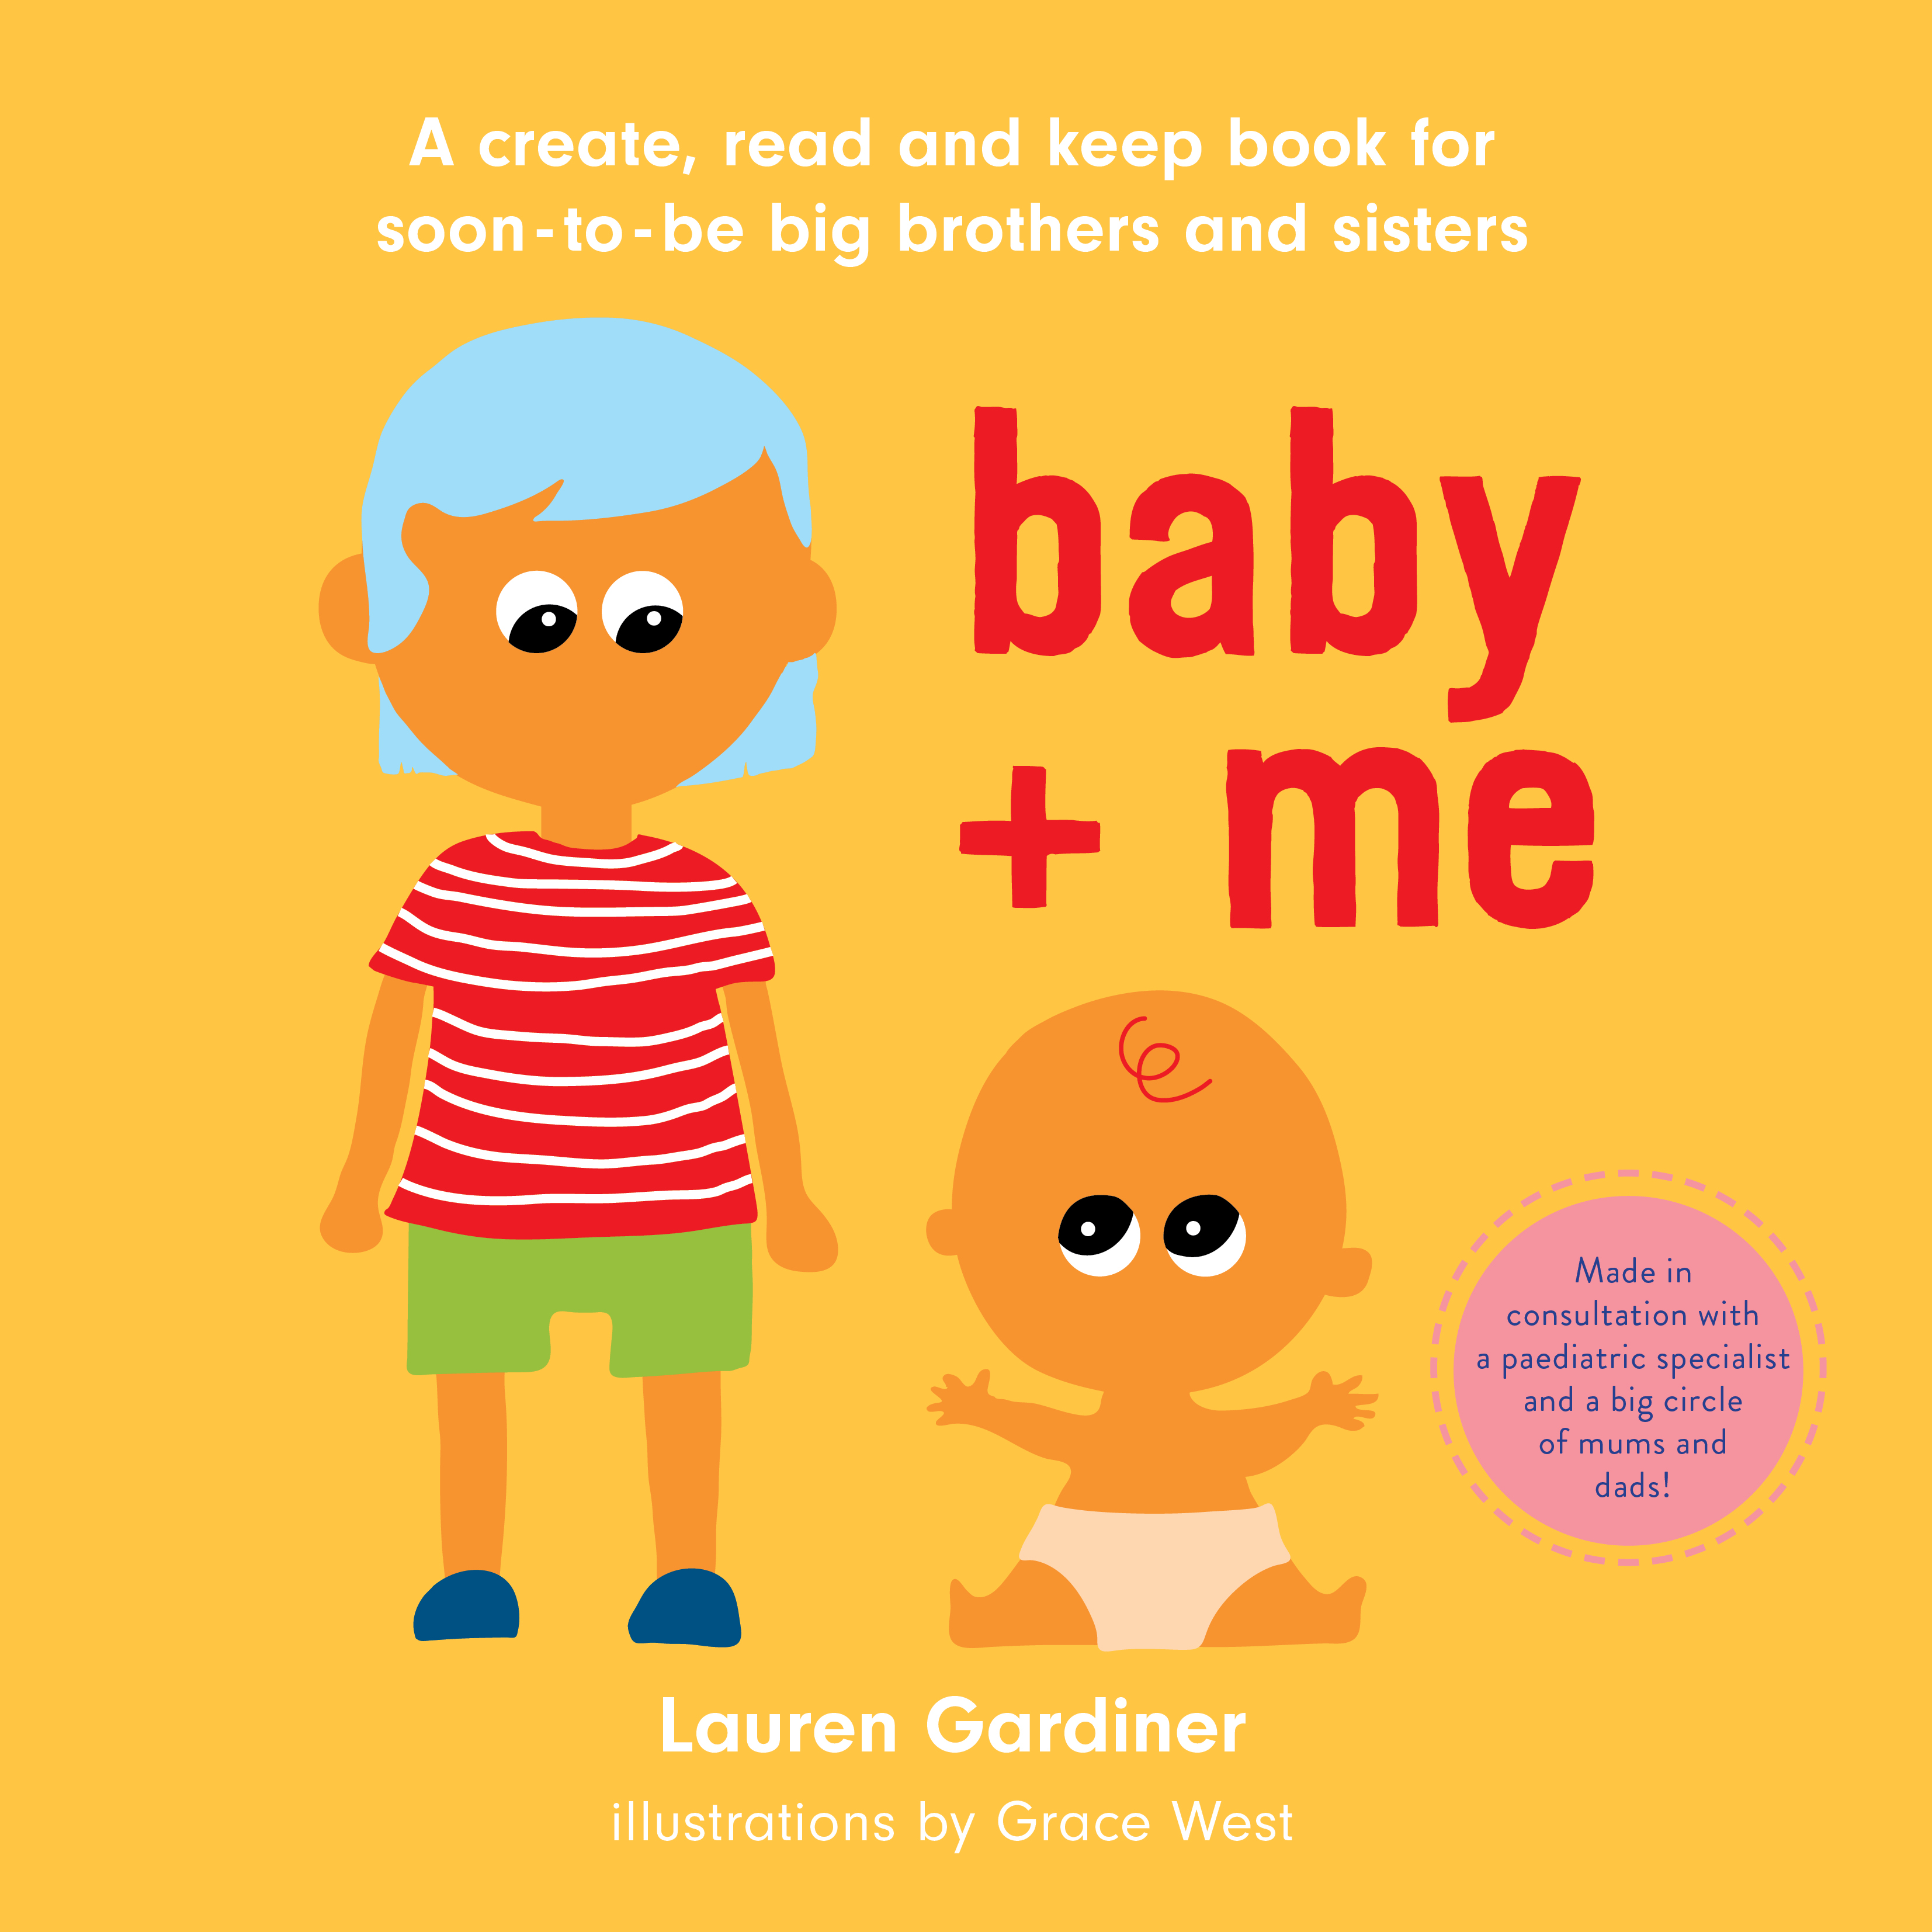 Front cover of the baby + me book for big brothers and big sisters.